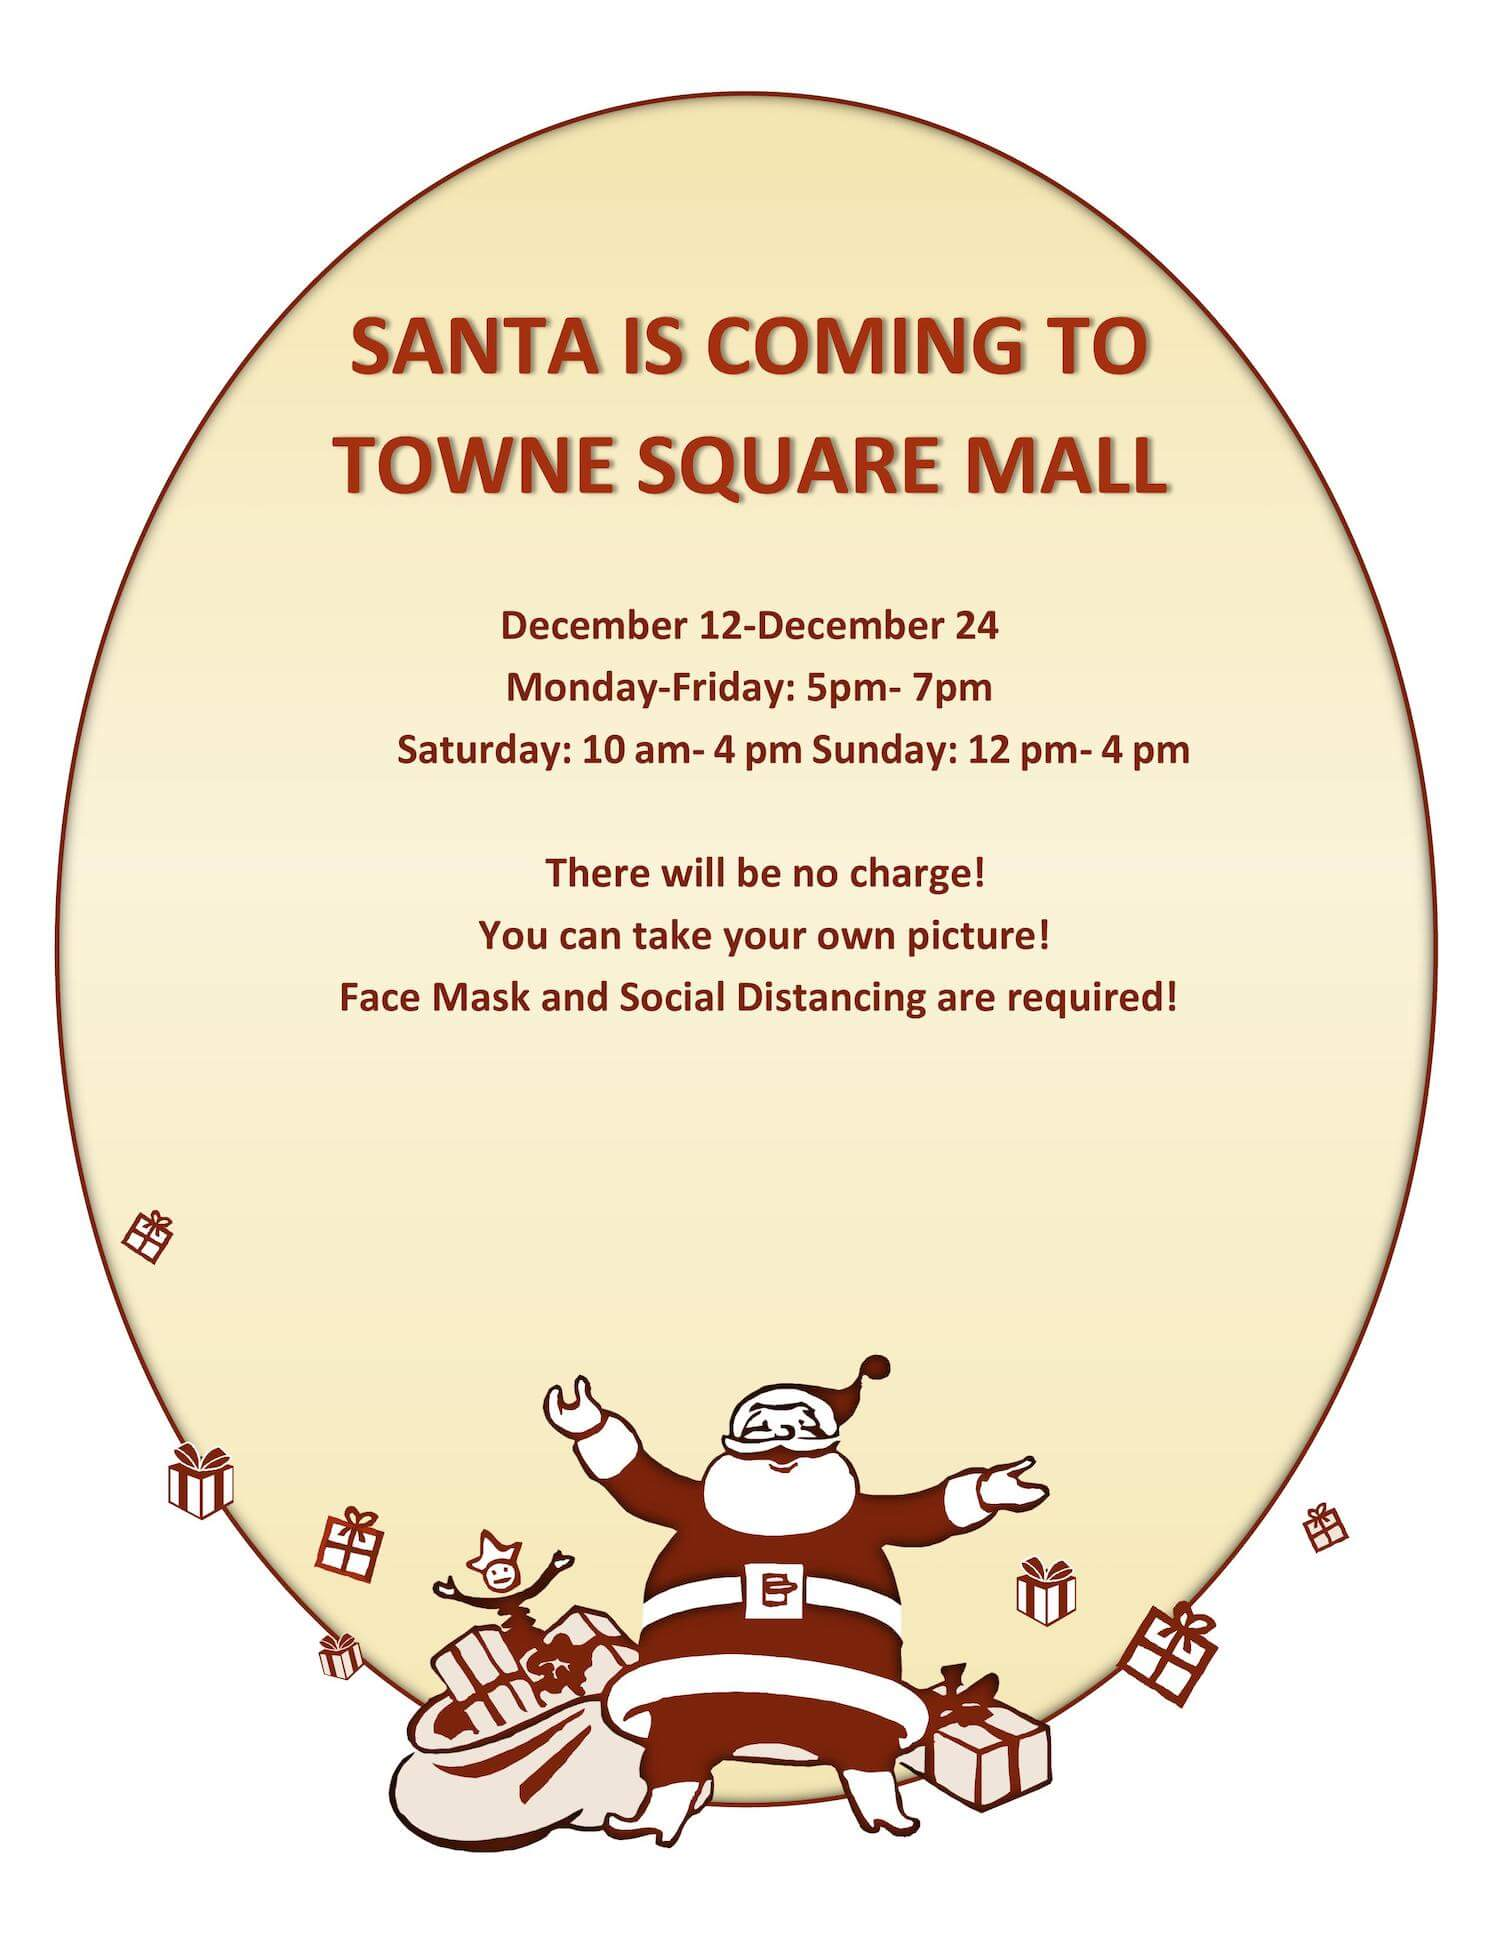 Santa is coming to Towne Square Mall